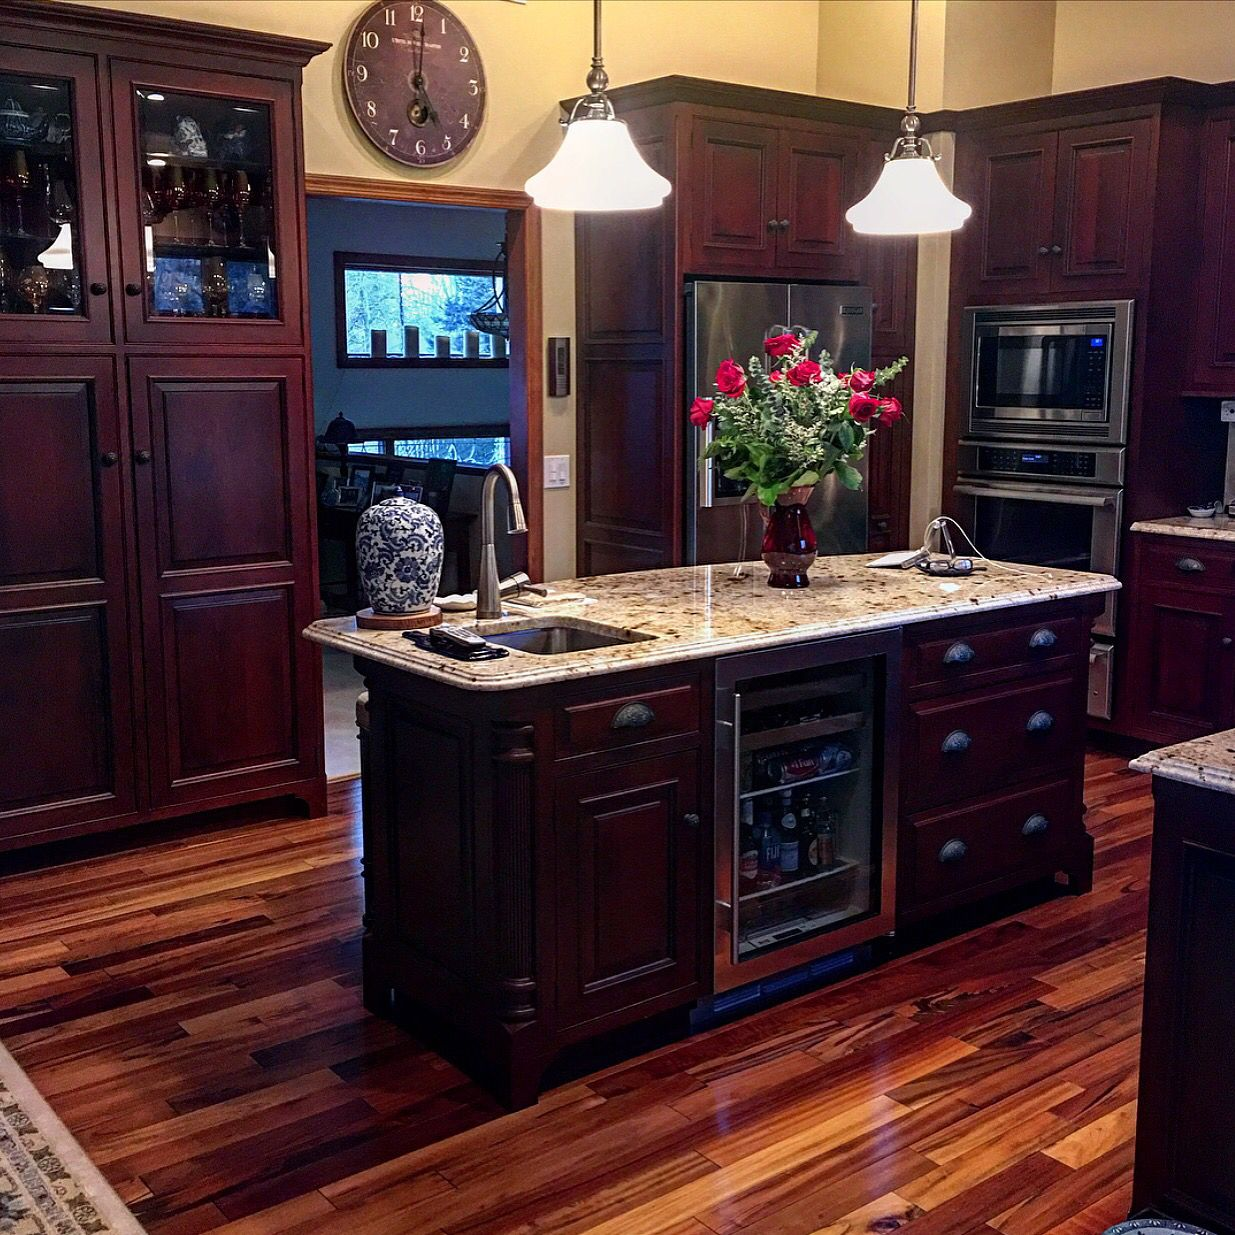 Dark Cabinets With Light Countertops Kitchen Island Tiger Wood Floors Beautiful Kitchen Kitchen Yellow Kitchen Walls Tigerwood Flooring Light Wood Kitchens